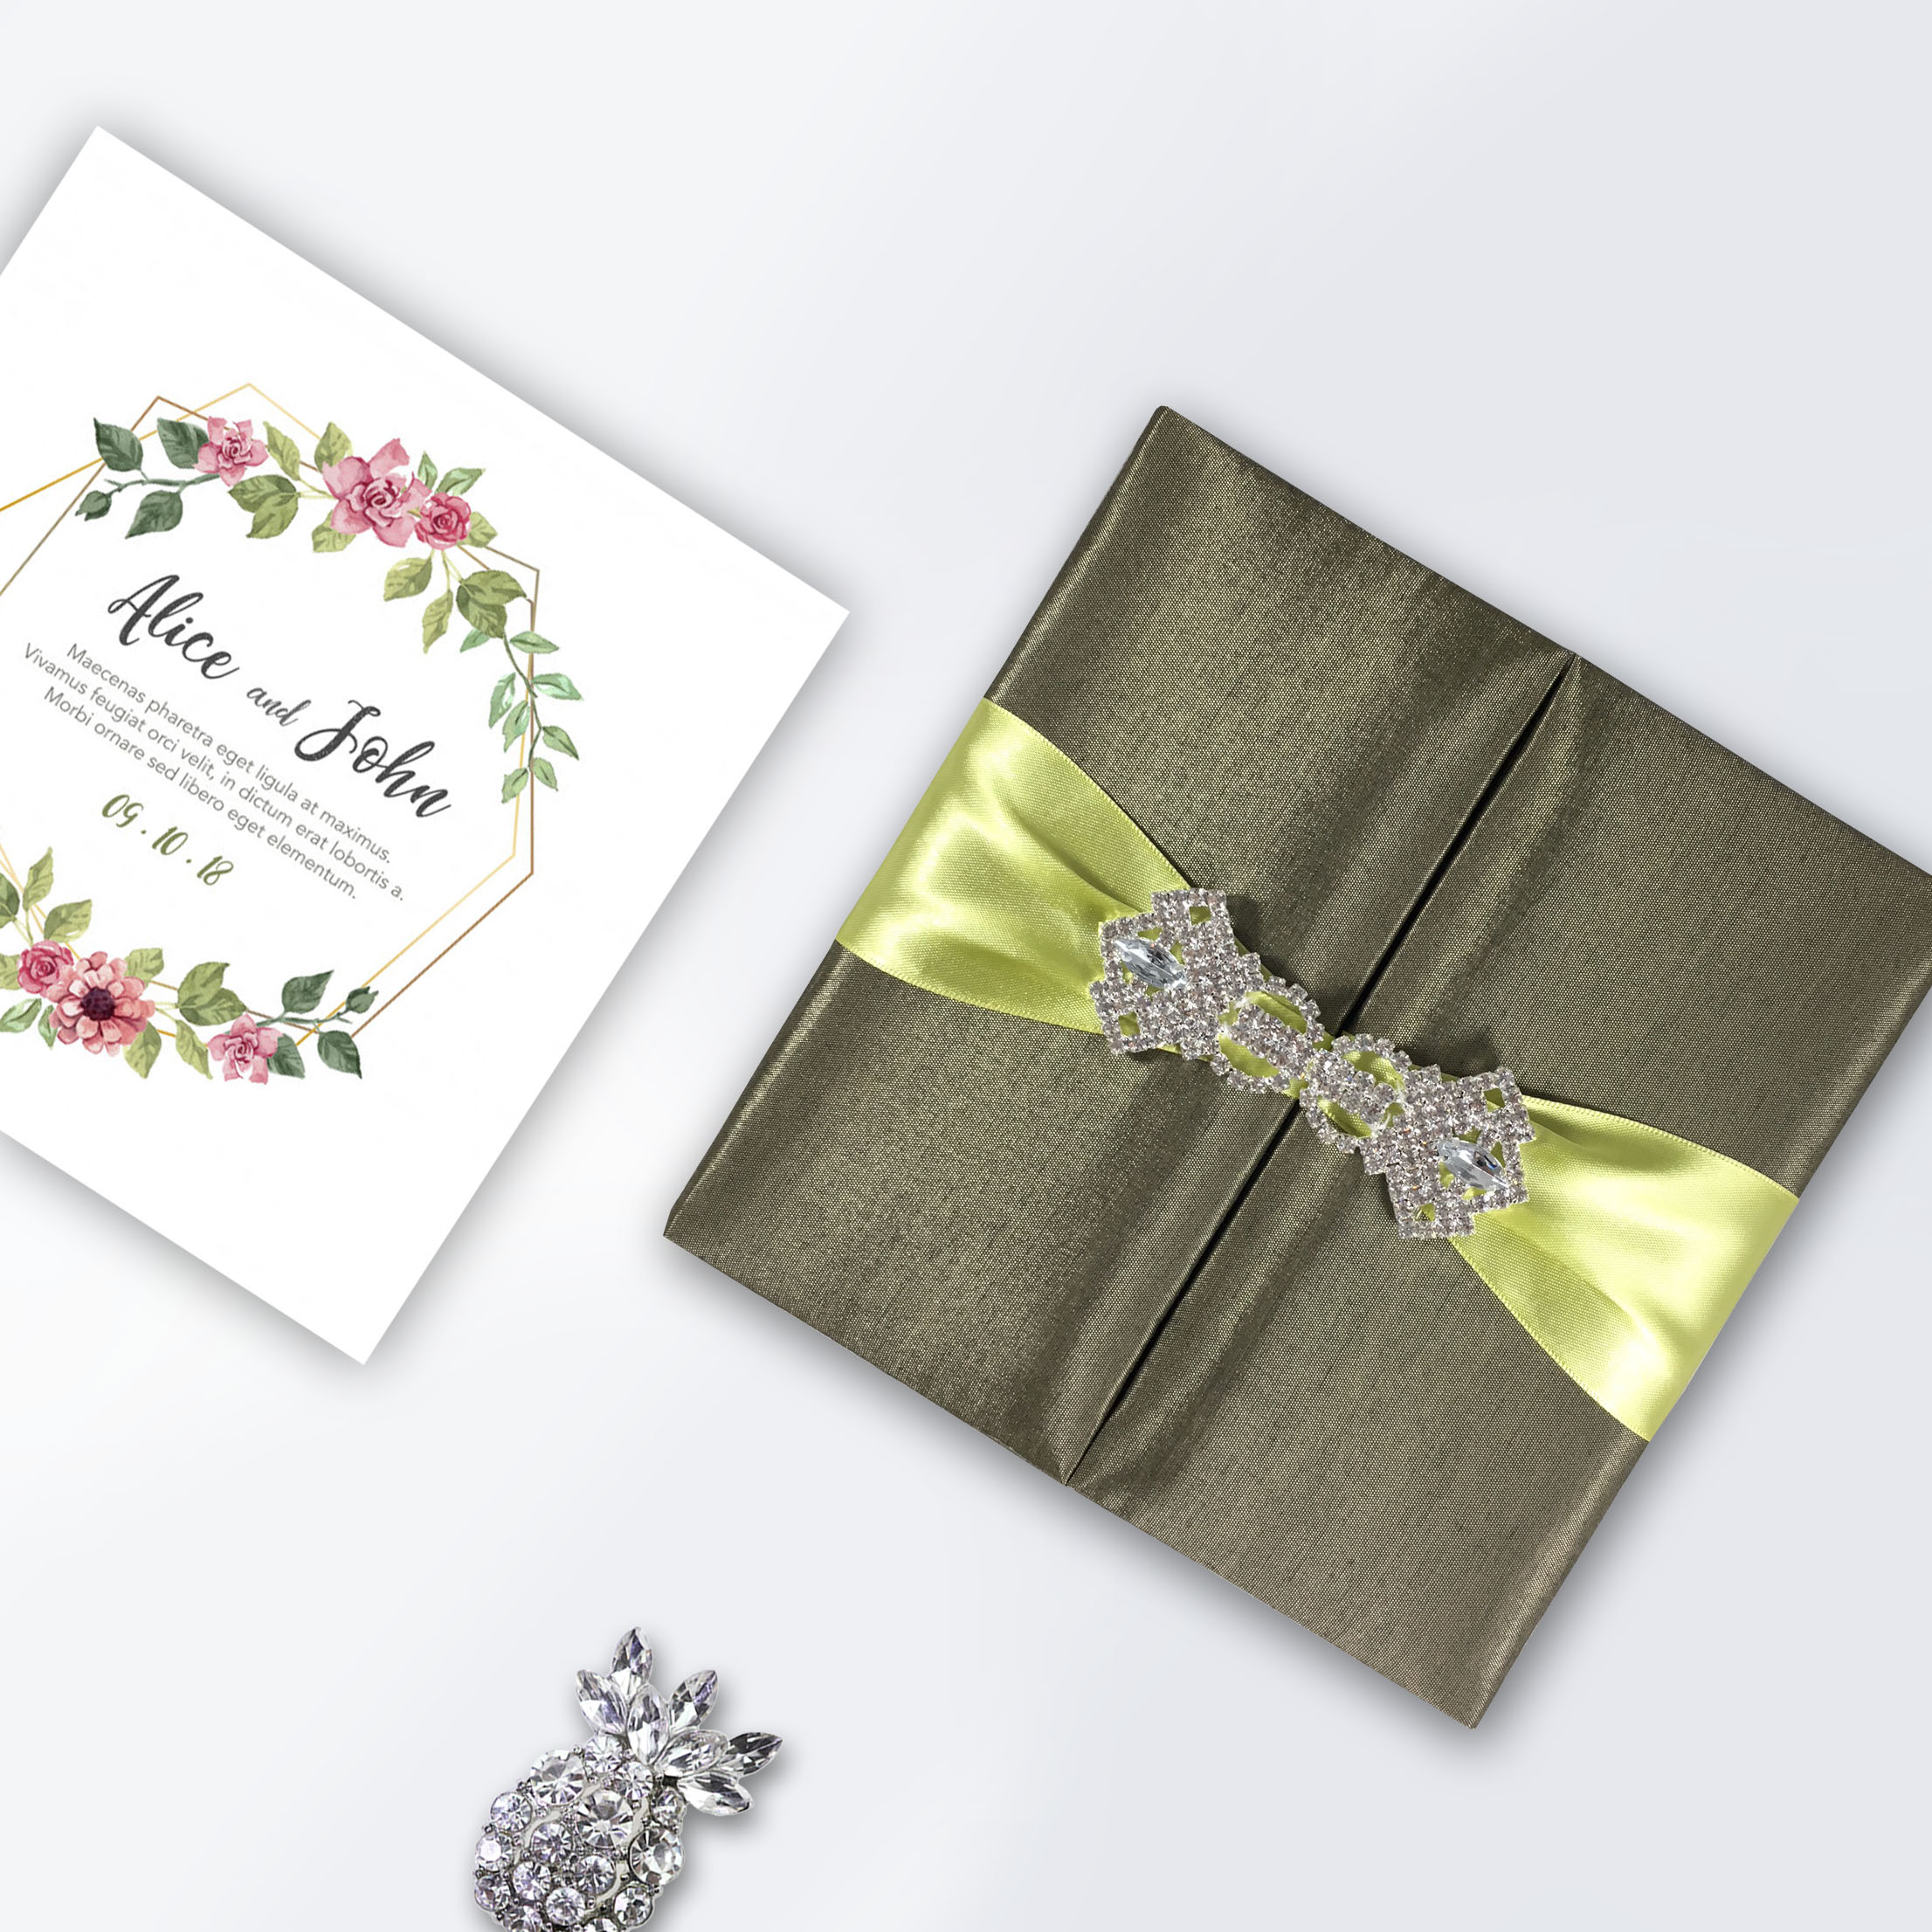 Deliver Your Announcements Invitations In This Luxury